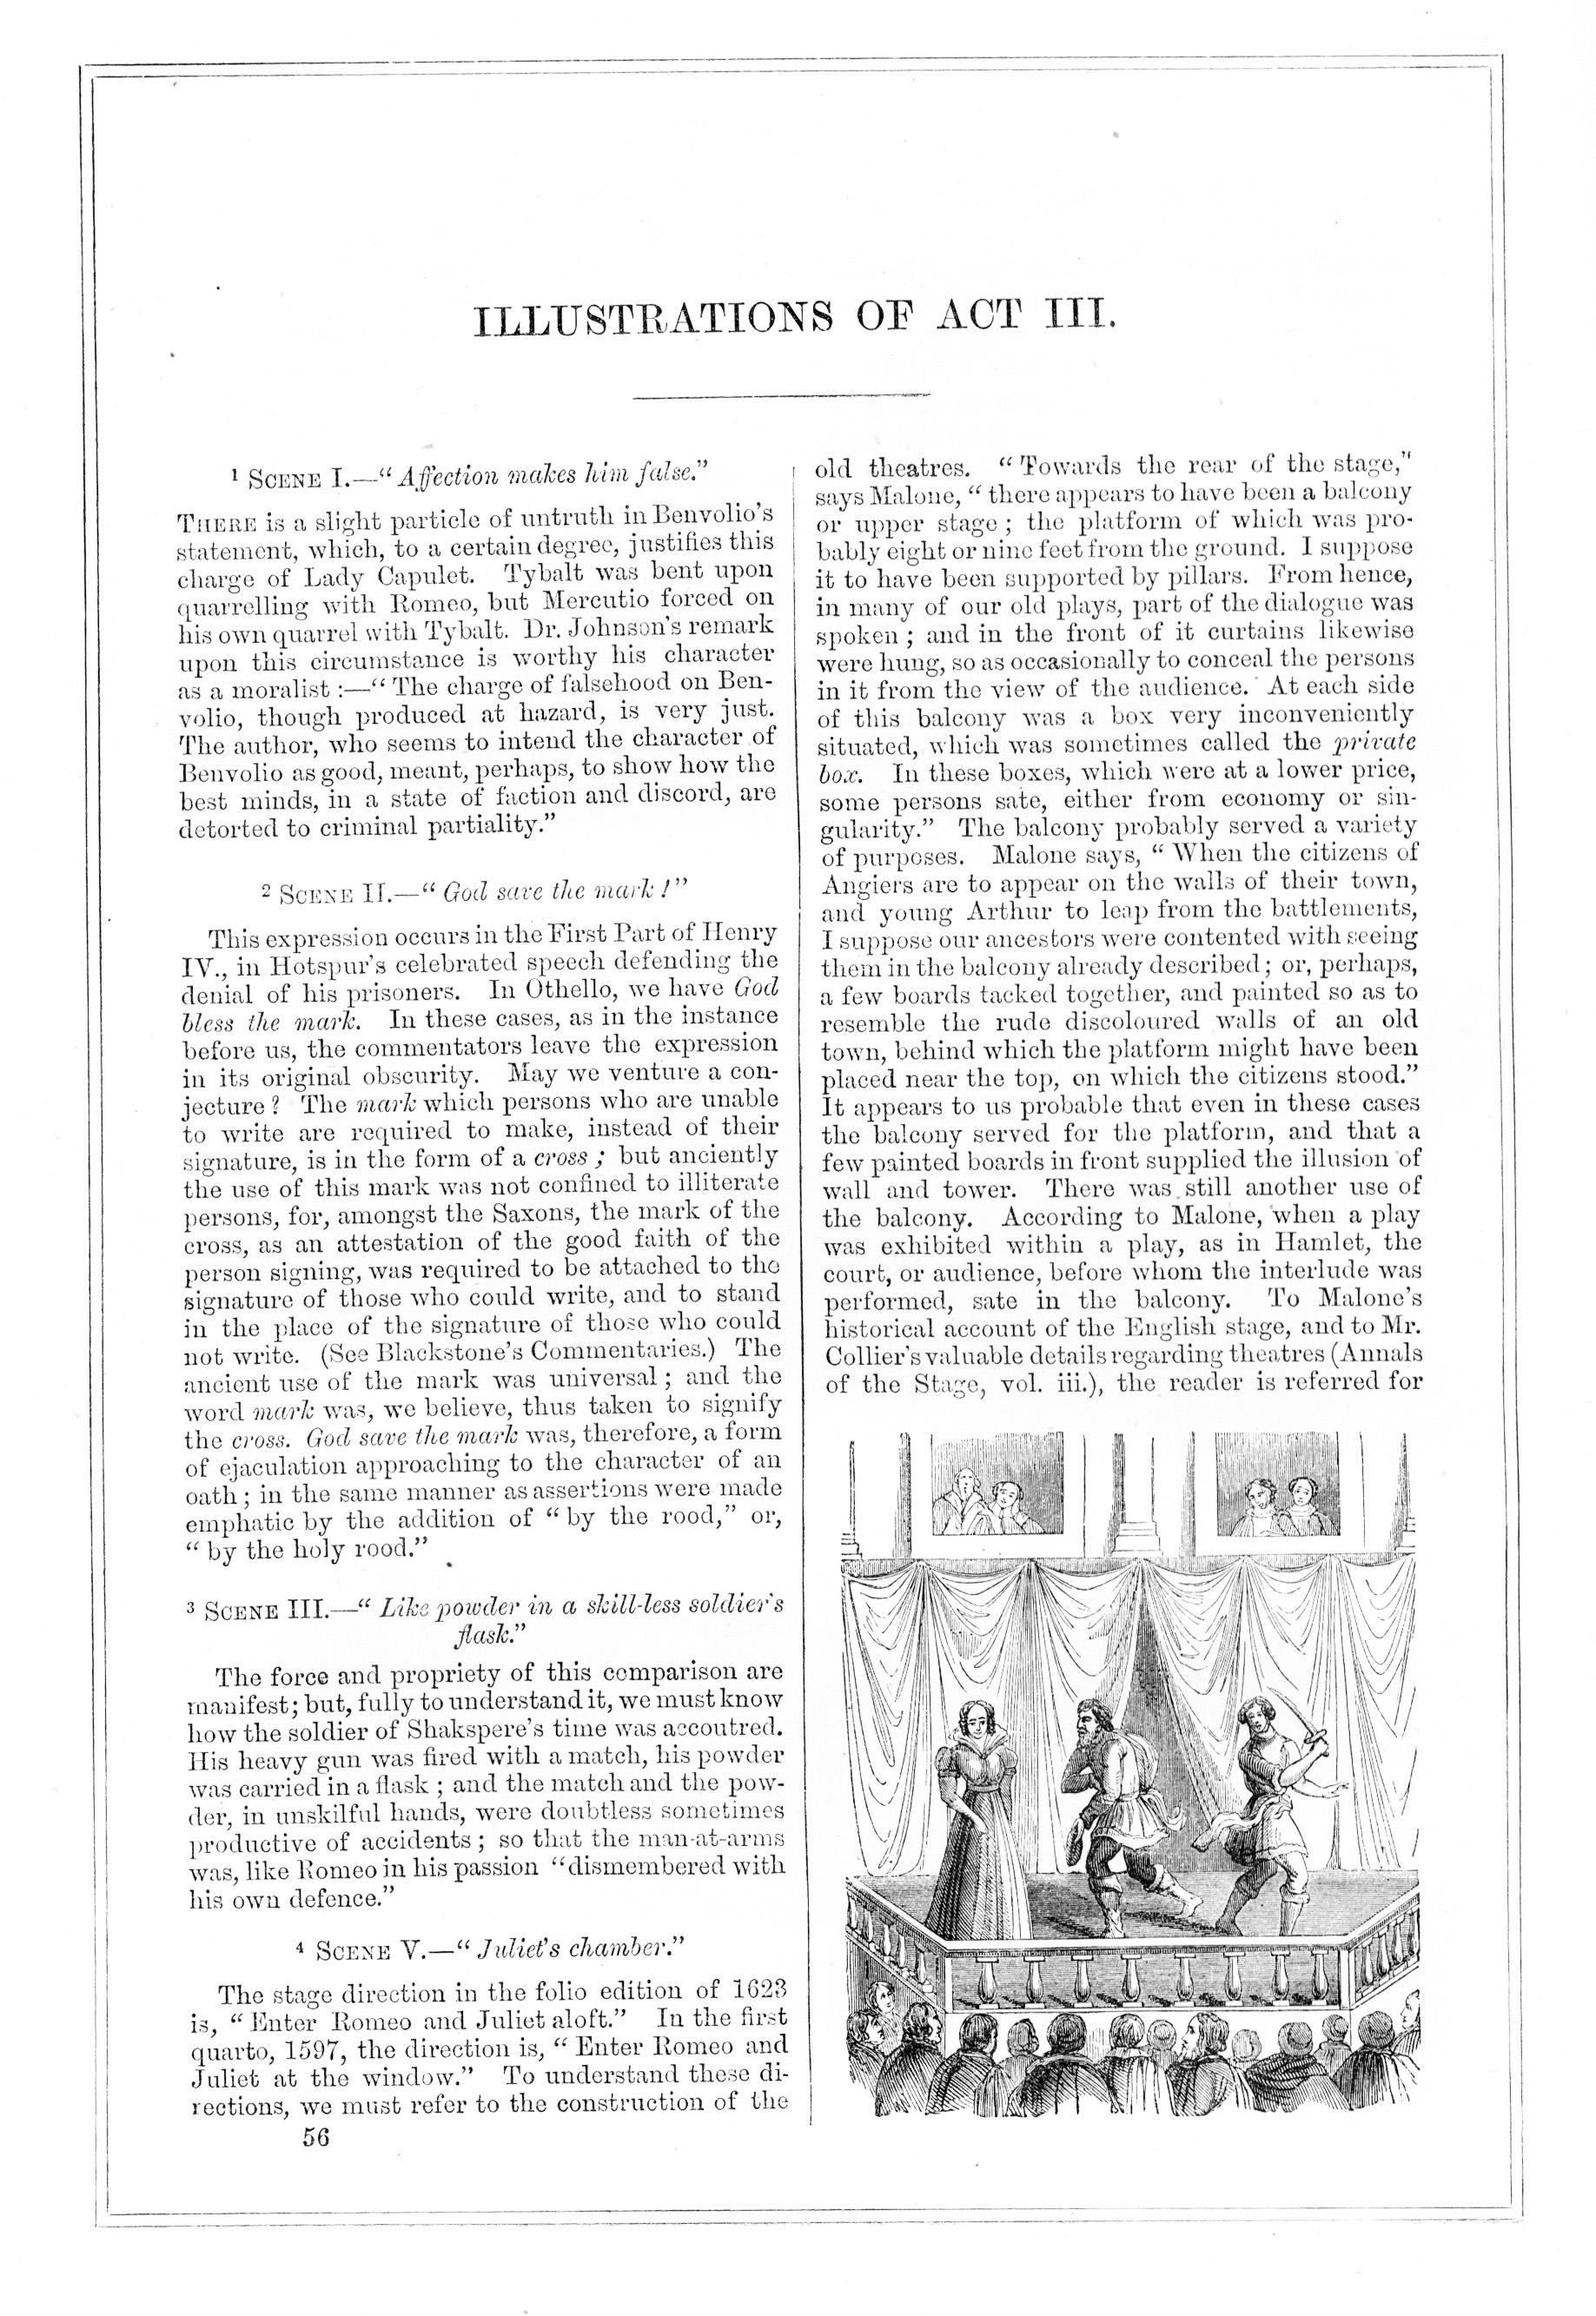 romeo and juliet victorian illustrated shakespeare archive